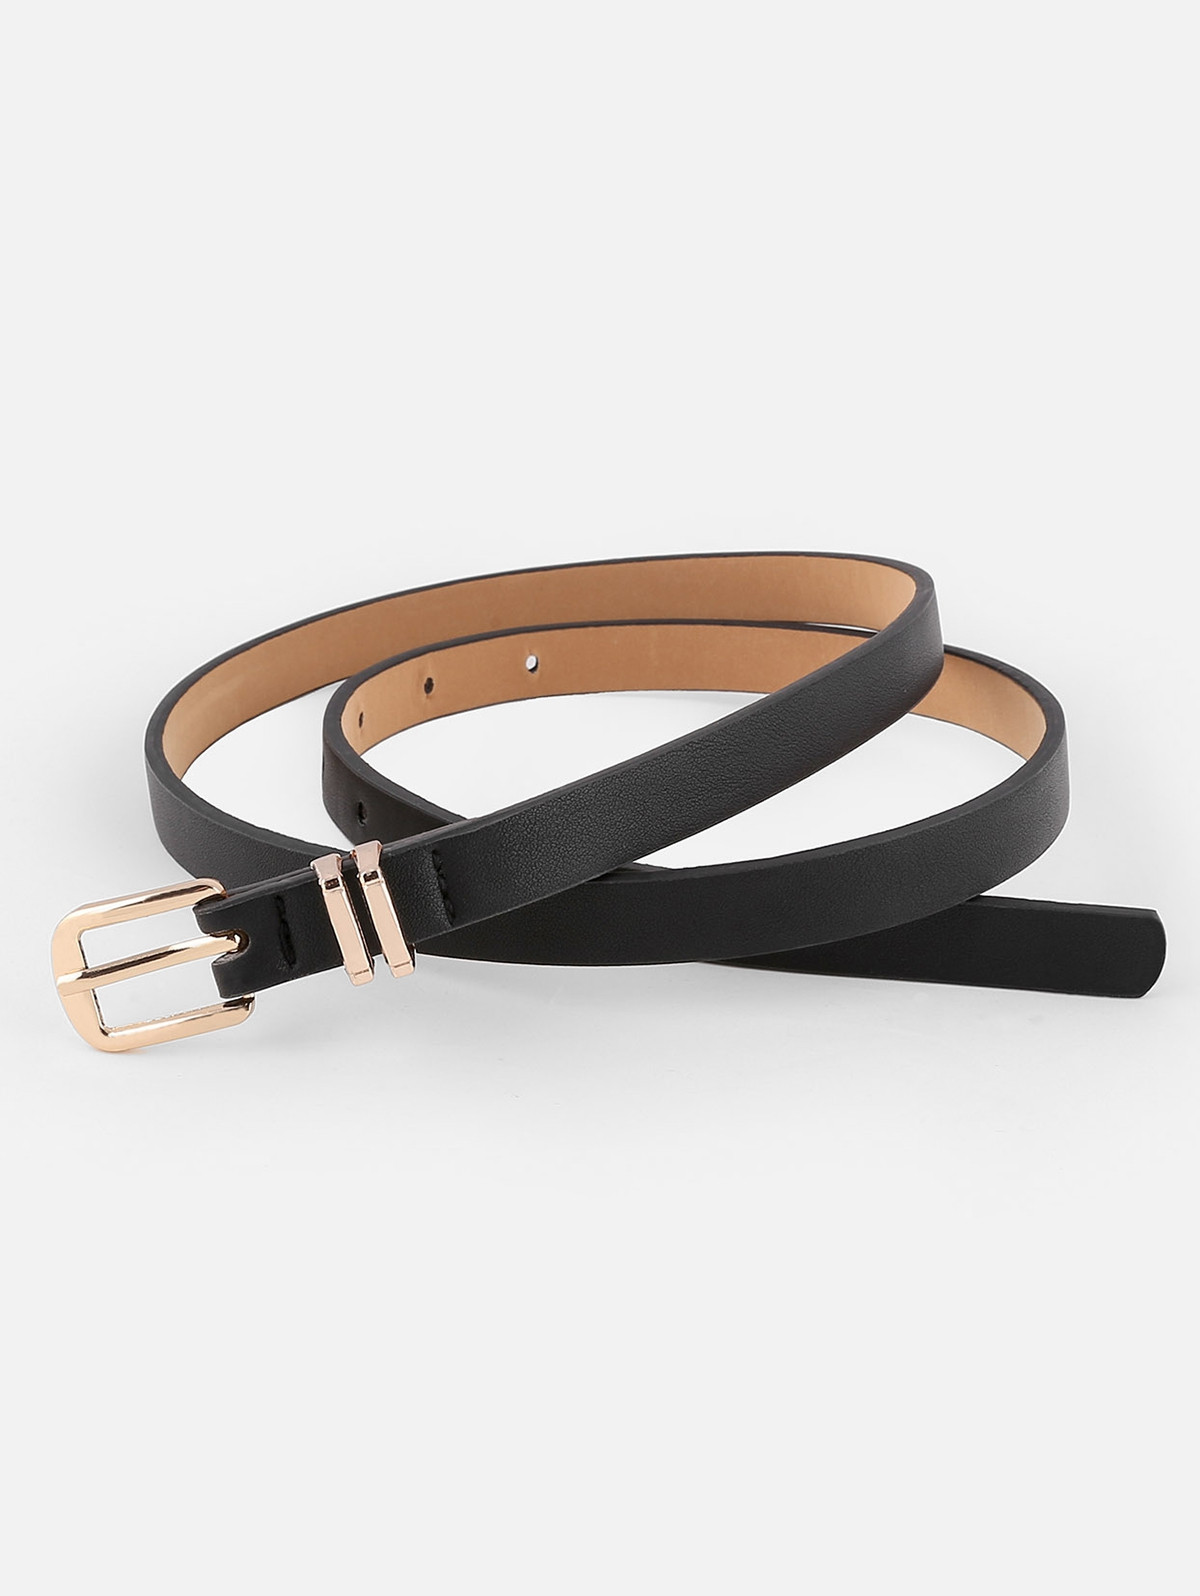 Metal Buckle Artificial Leather Pant Belt  BLACK